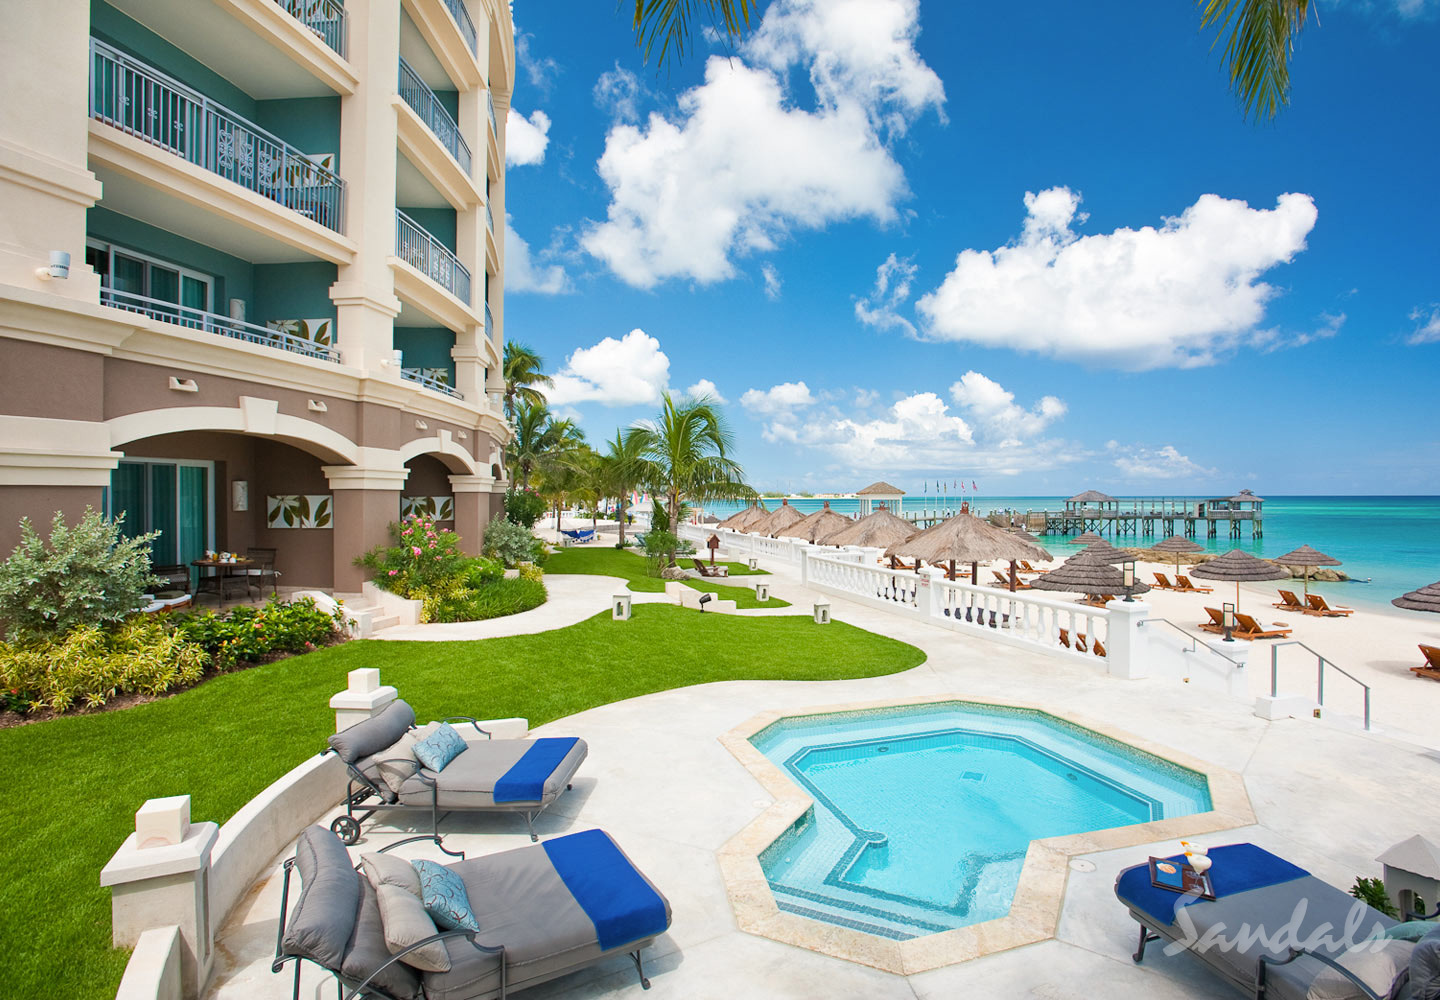 Travel Agency All-Inclusive Resort Sandals Royal Bahamian 037